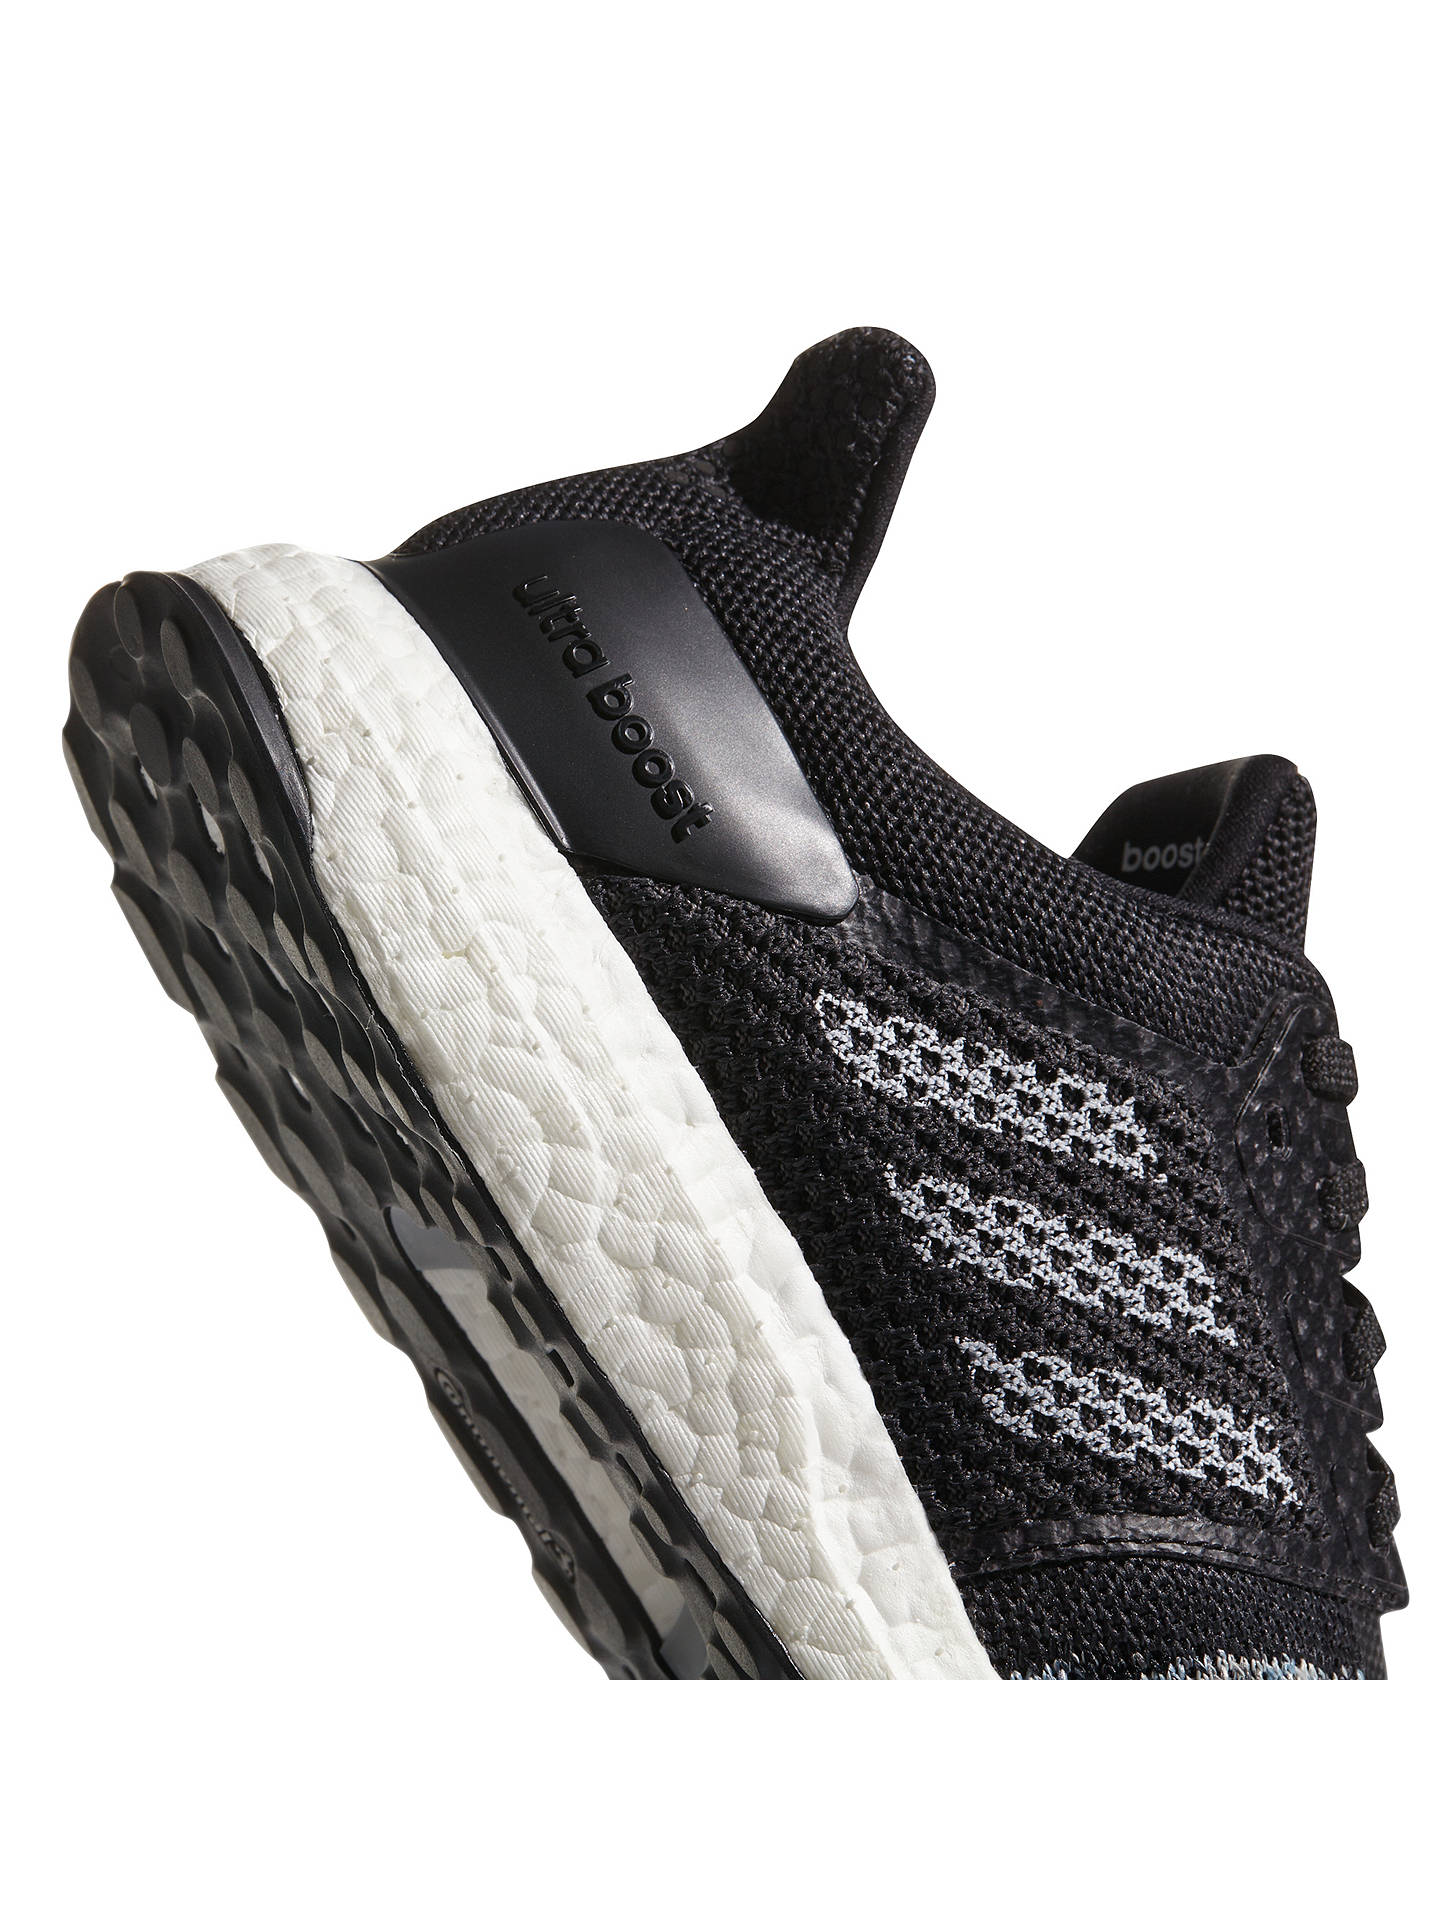 pretty nice 14cdc 59aba adidas UltraBOOST ST Men's Running Shoes, Black at John ...